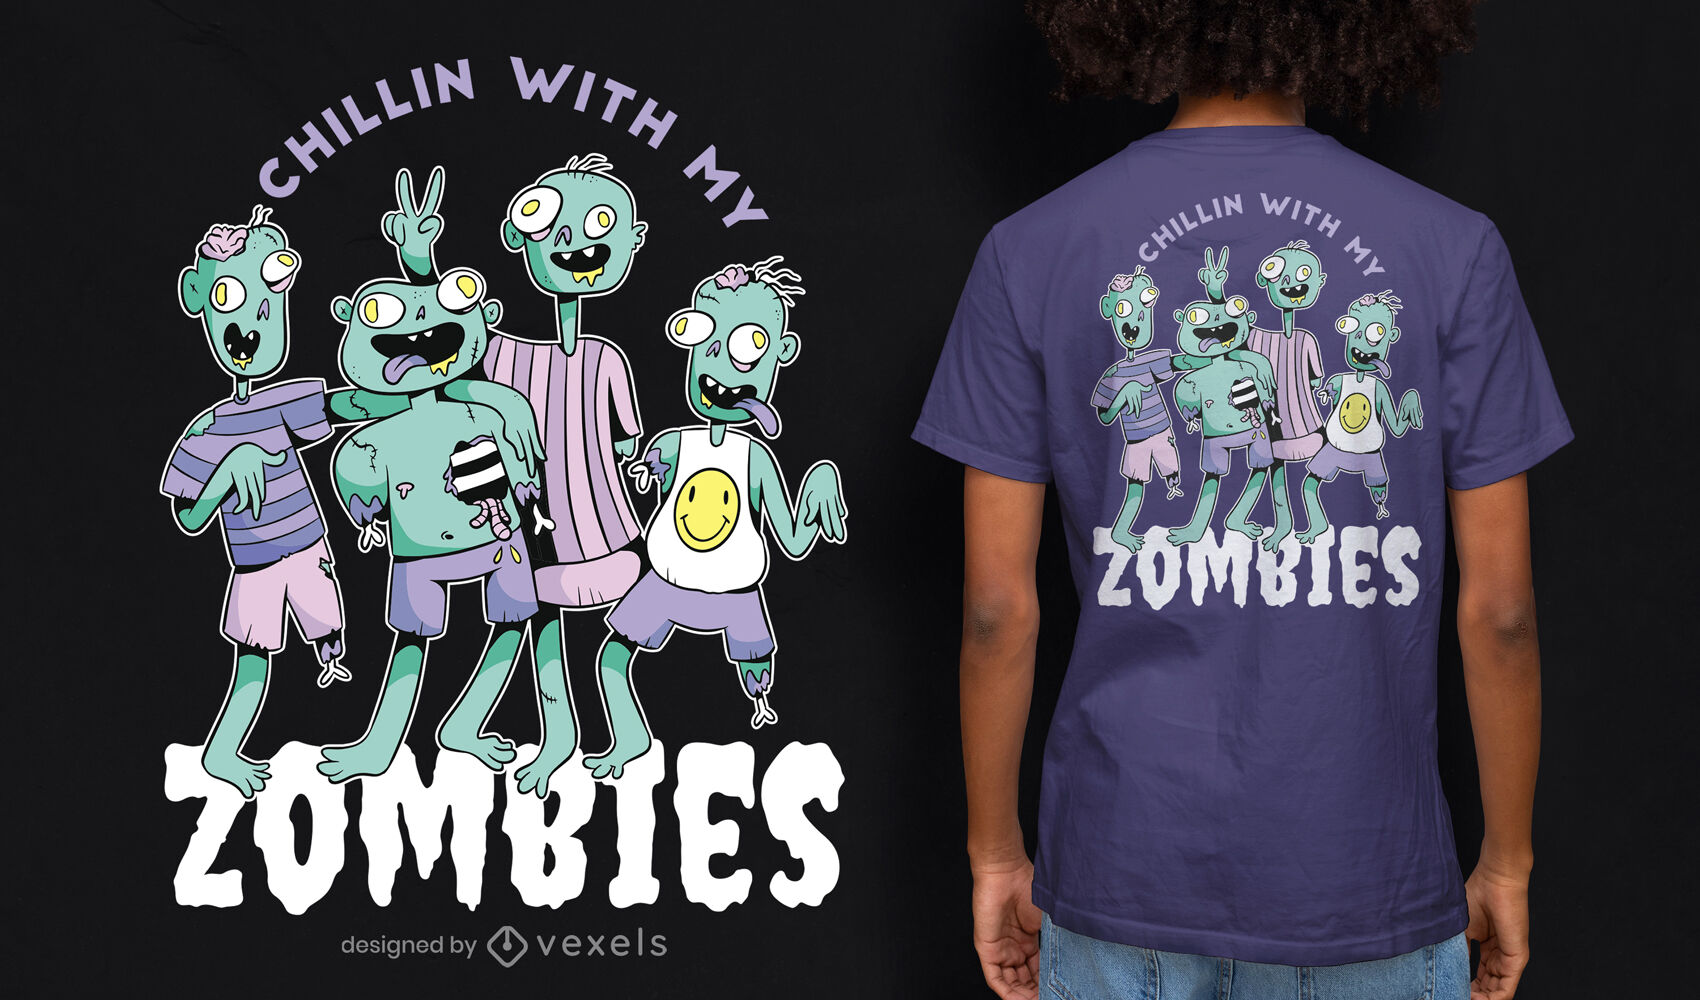 Funny chilling zombies t-shirt design